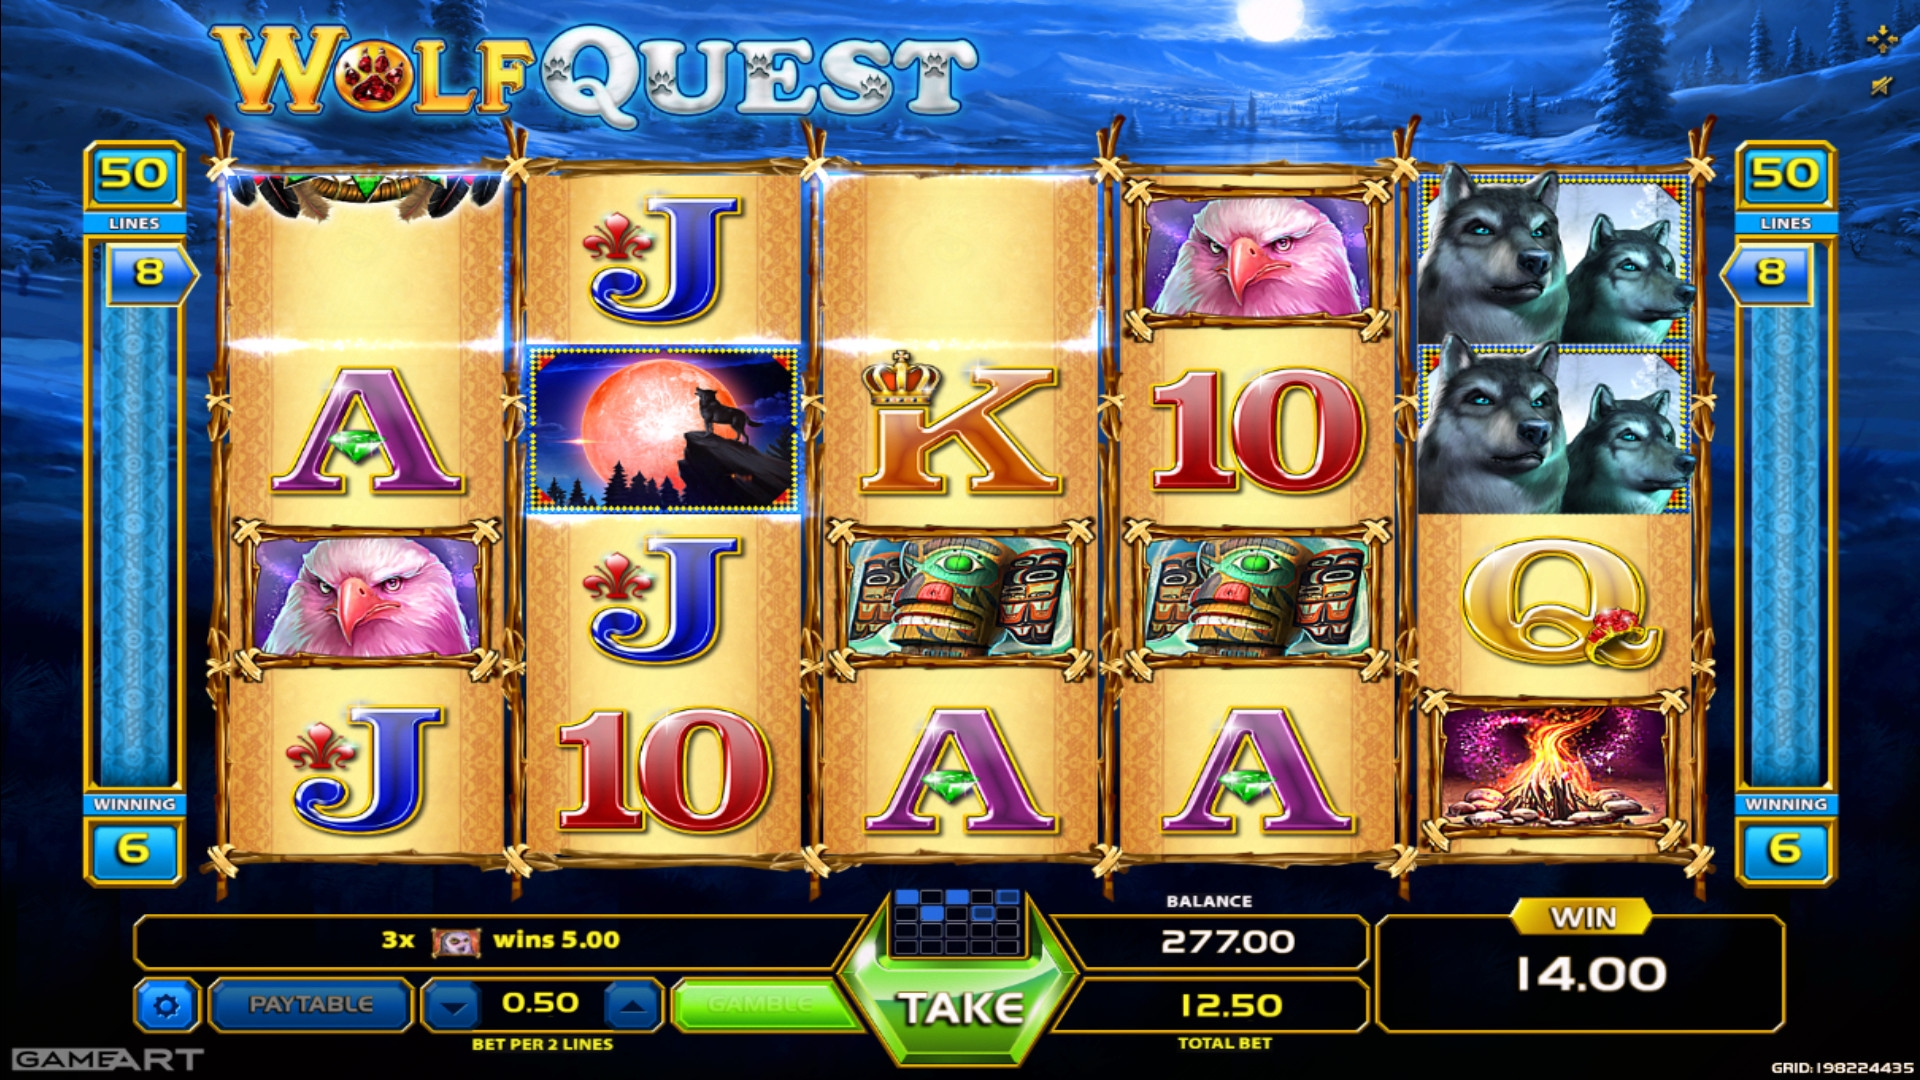 wolf quest slot GameArt